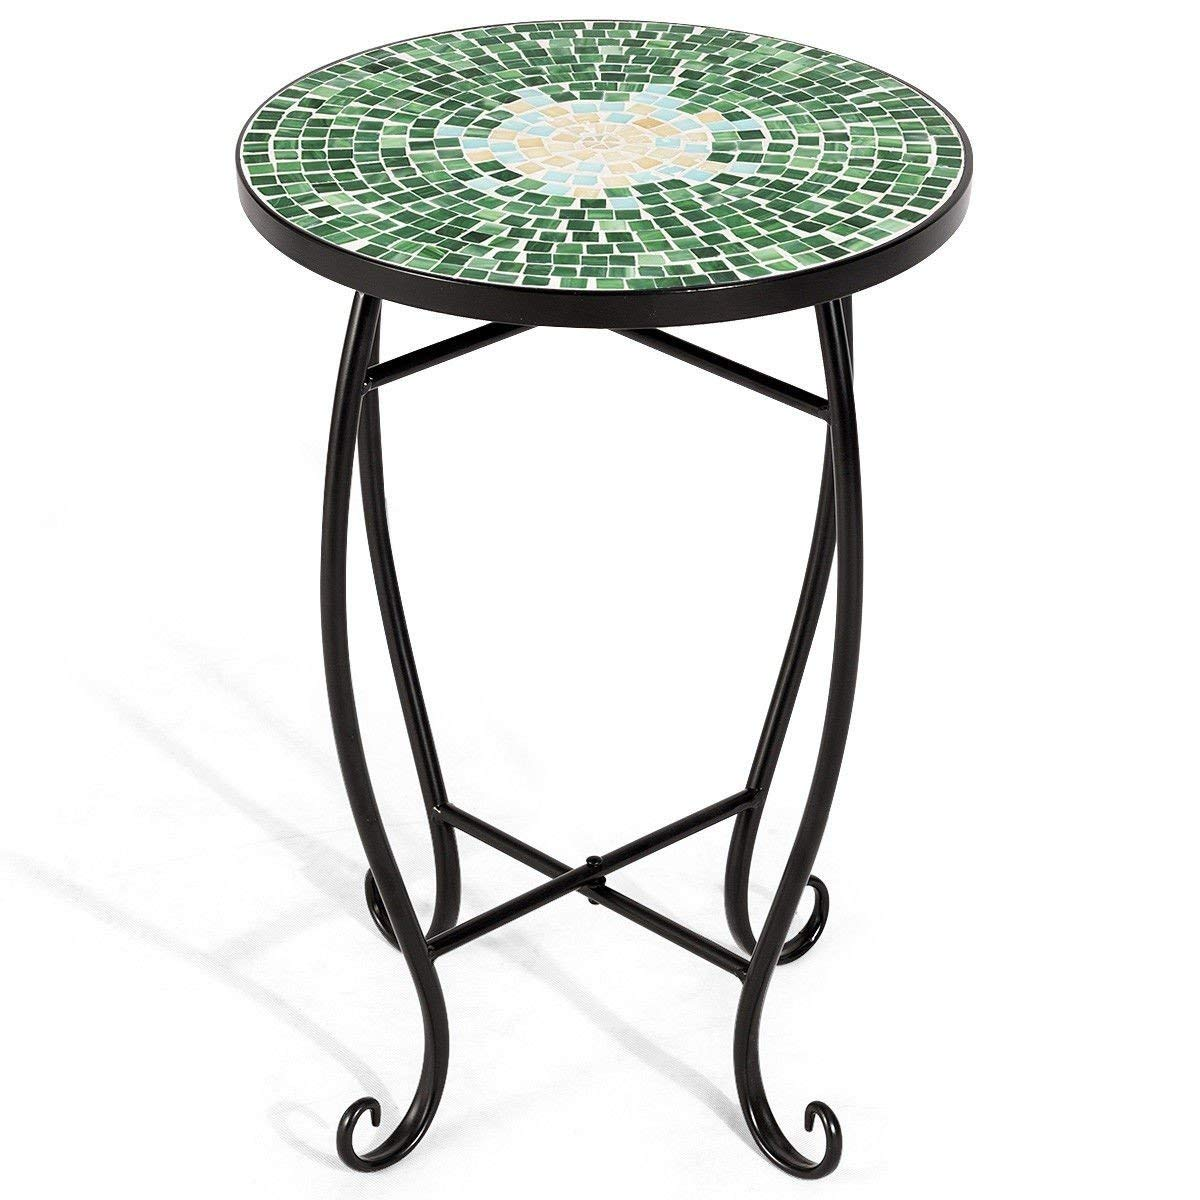 mosaic table garden find line accent indoor get quotations custpromo metal round side plant stand with cobalt glass top outdoor pottery barn couch narrow mirrored bedside black